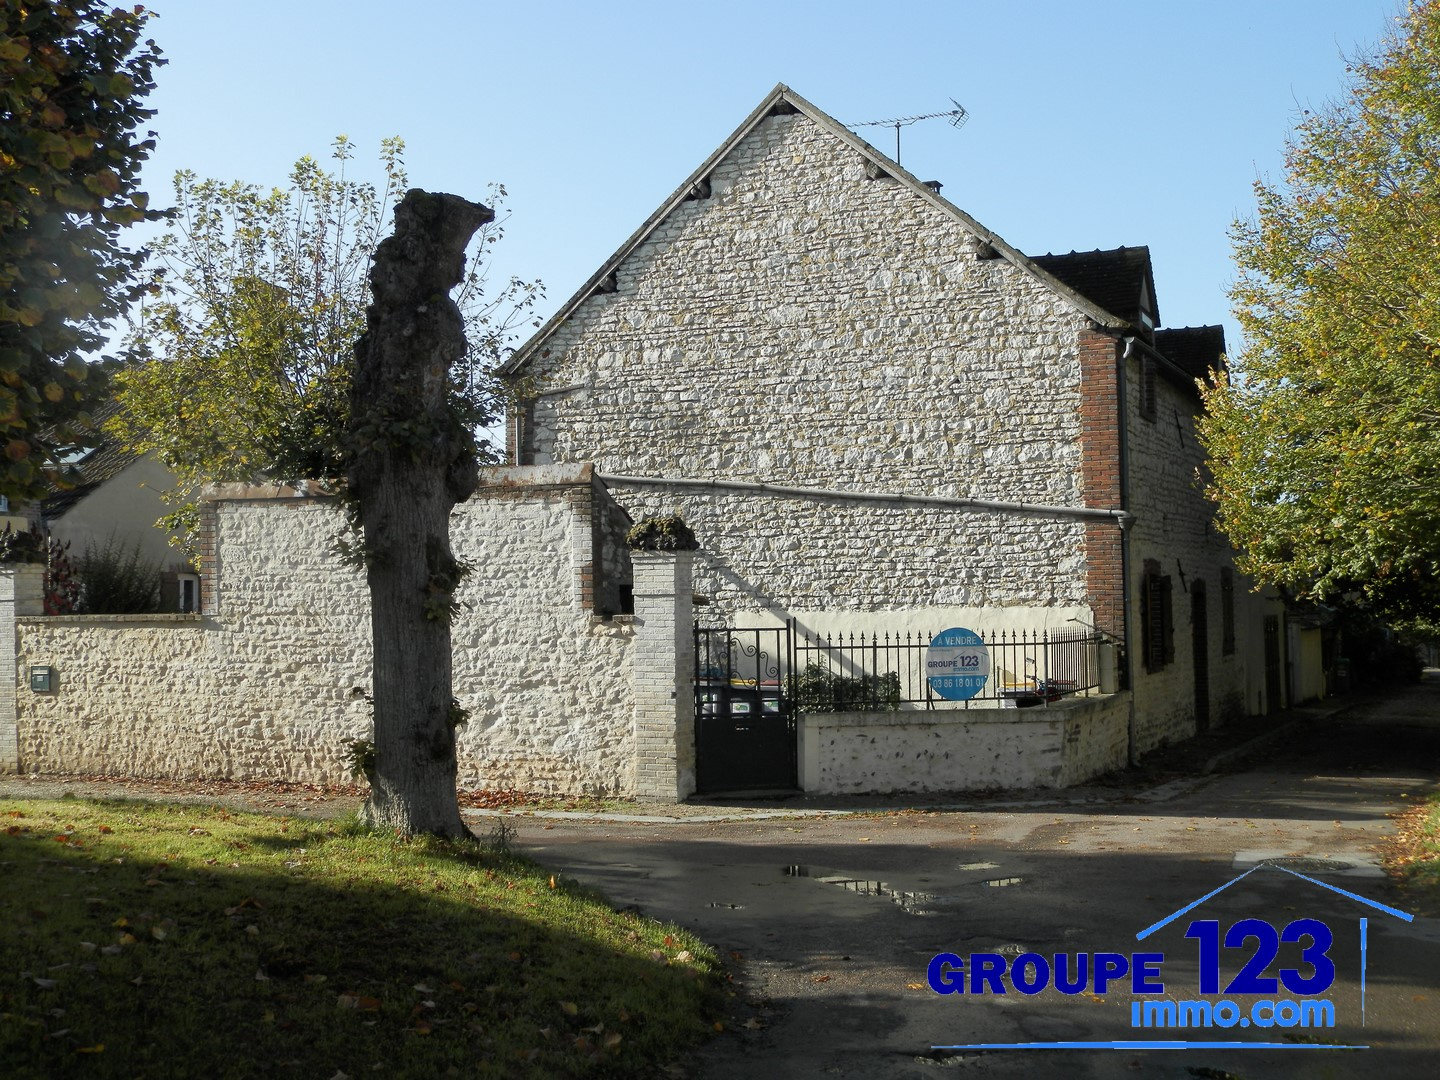 Groupe 123 immo com agence immobili re appoigny 89380 for Immo immobilier